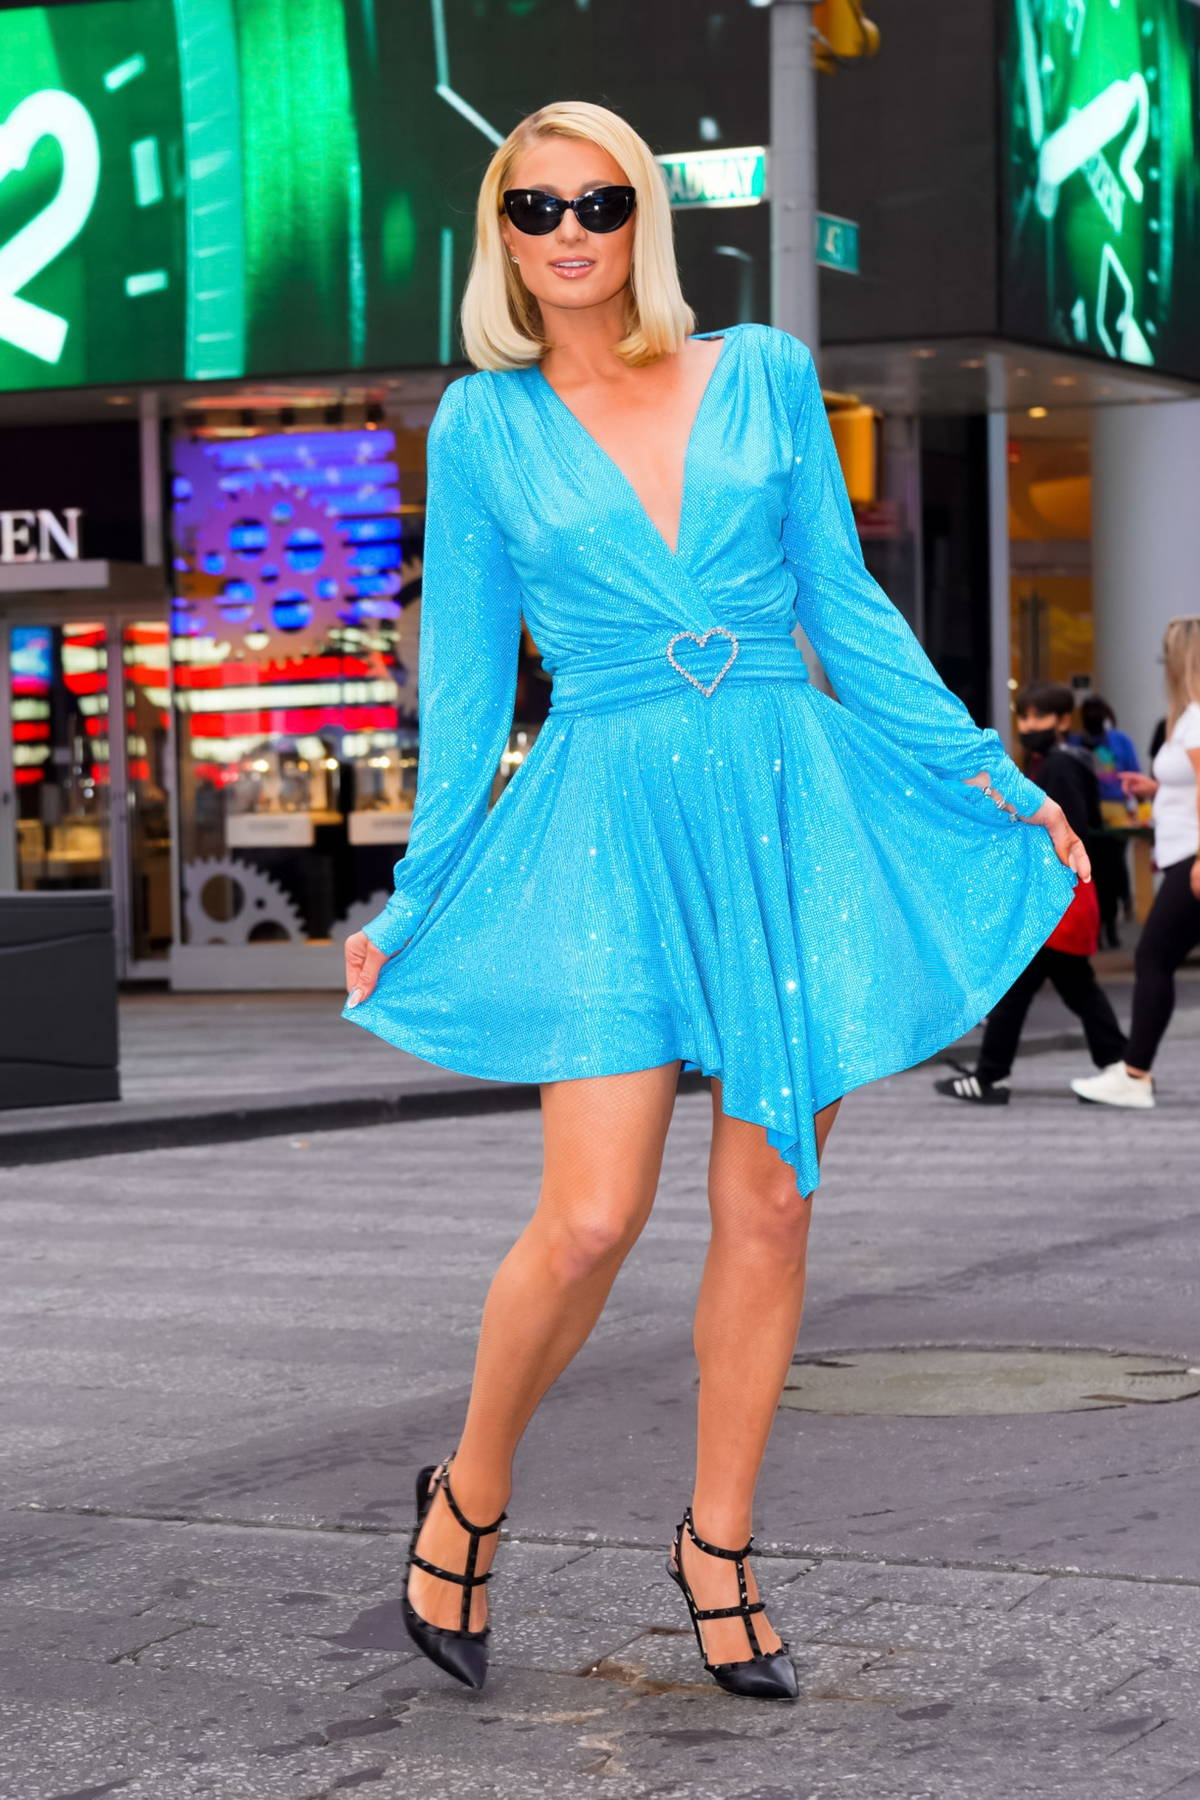 Paris Hilton dazzles in a sparkly blue dress while posing for photos at Times Square in New York City